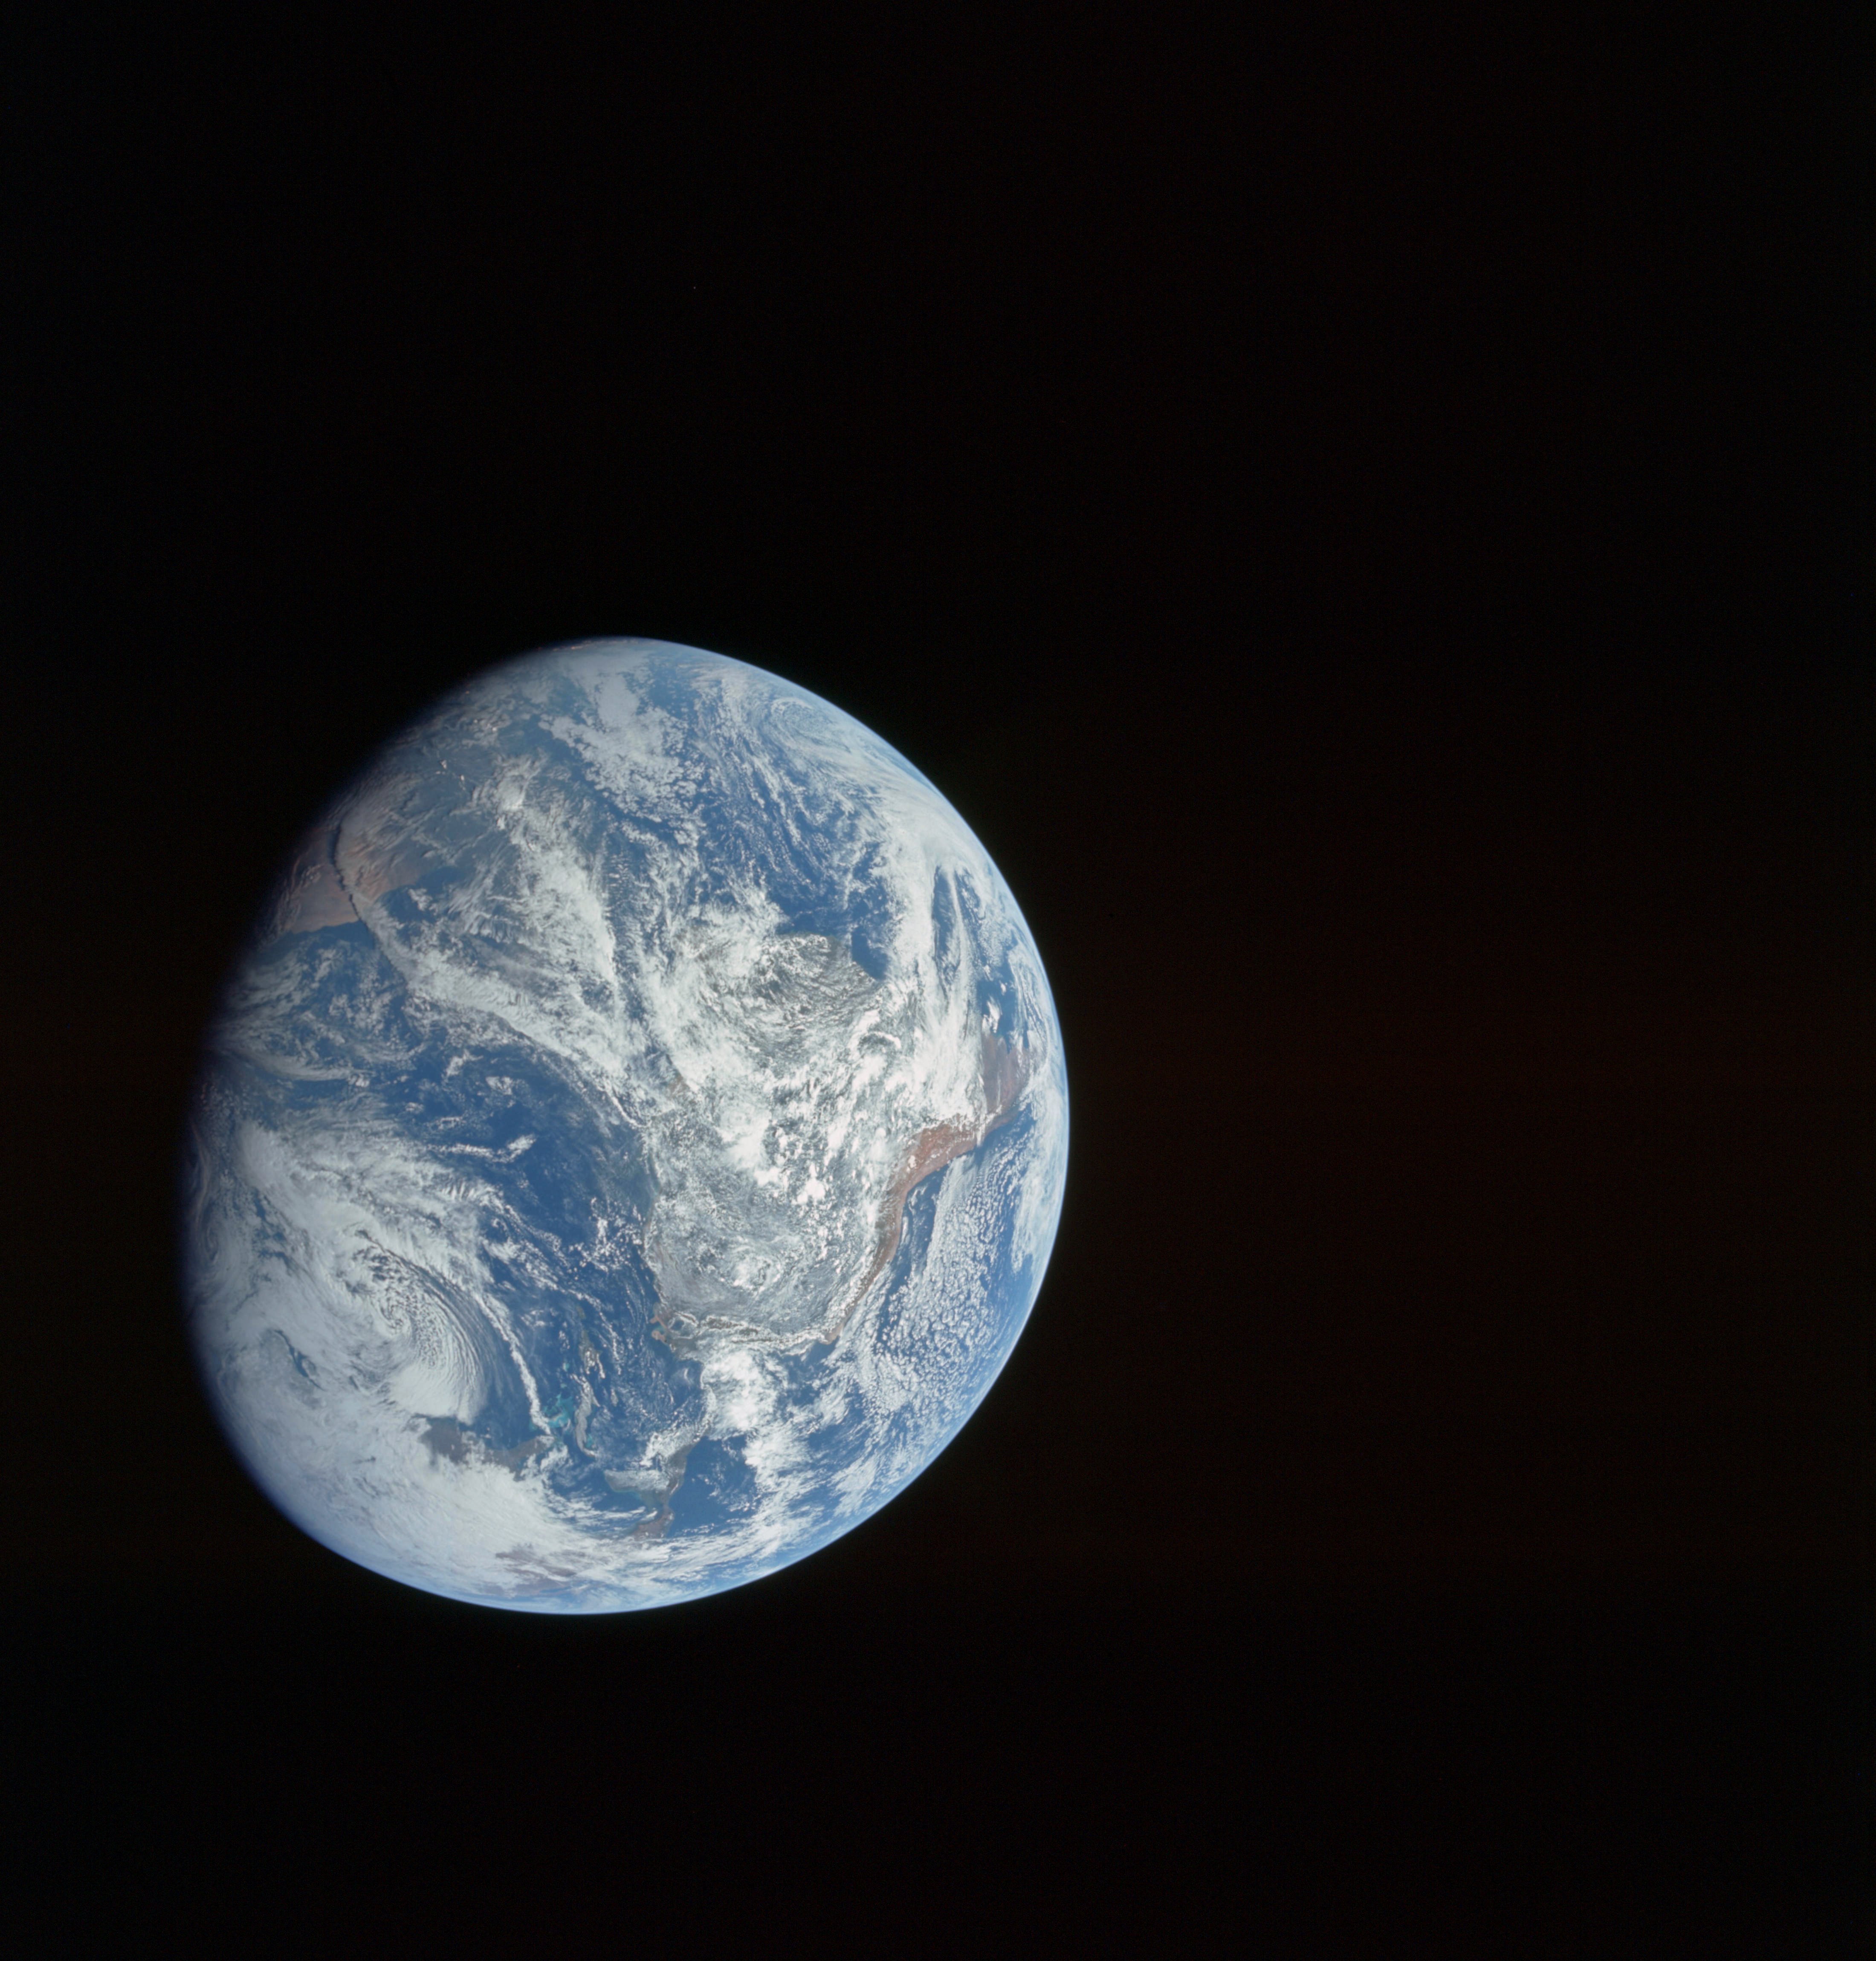 First photo of the whole Earth taken by a human in space